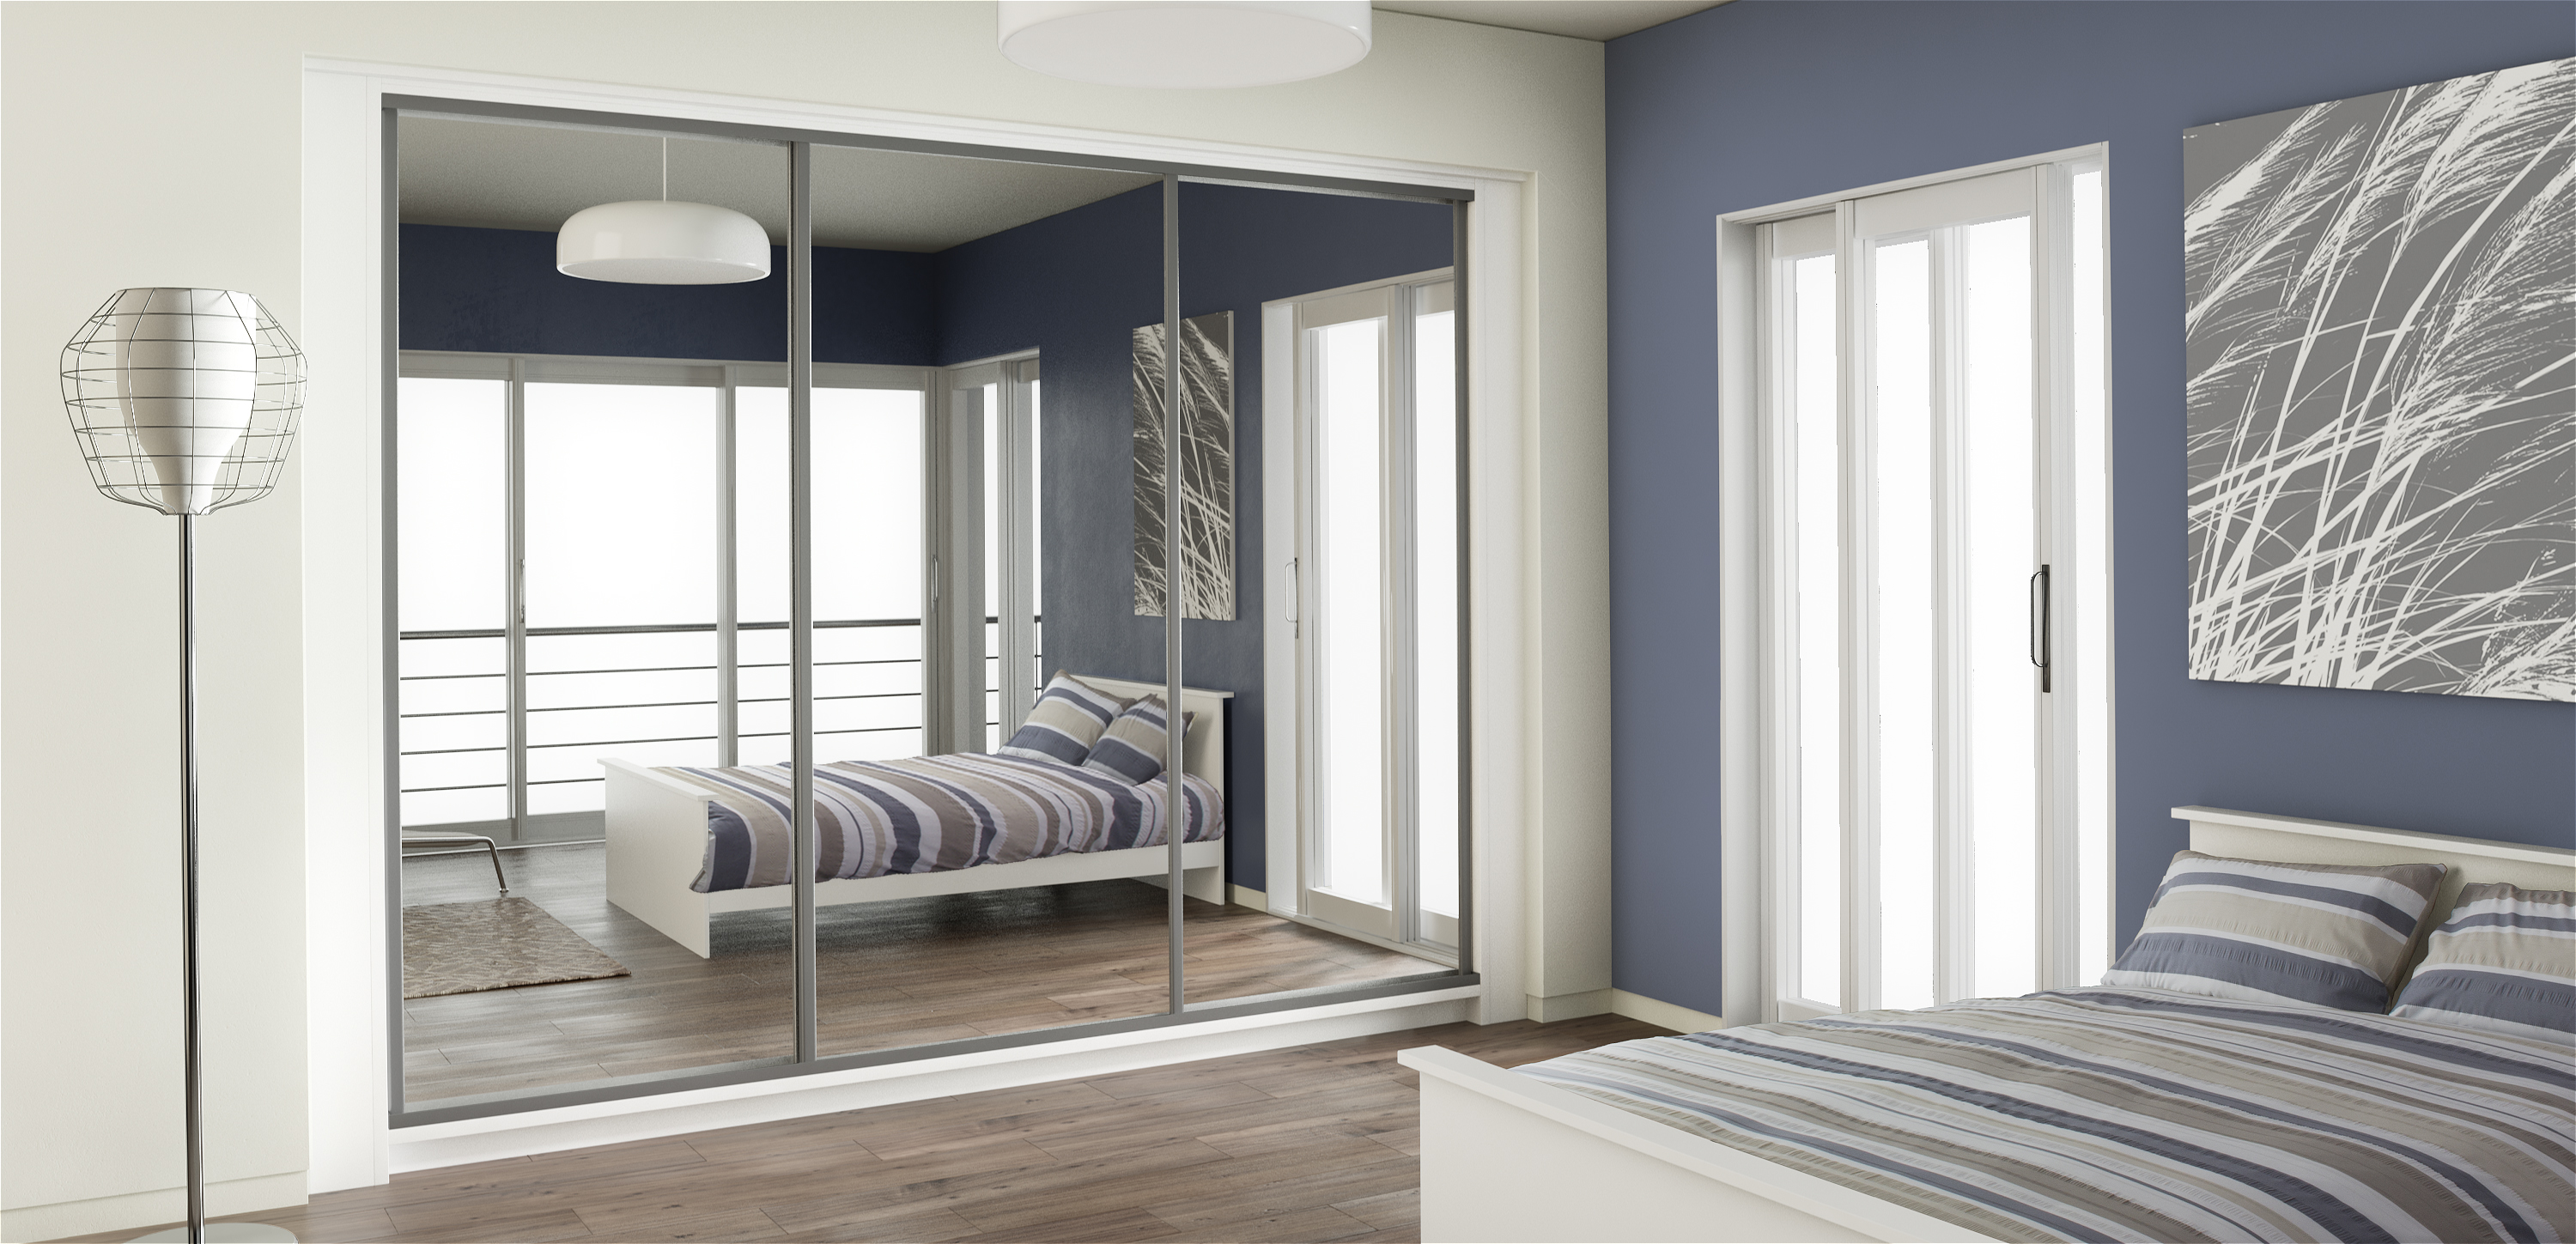 mirror wardrobe mirror-wardrobe-1 a great and useful furniture item to invest in - mirror VXHELYN